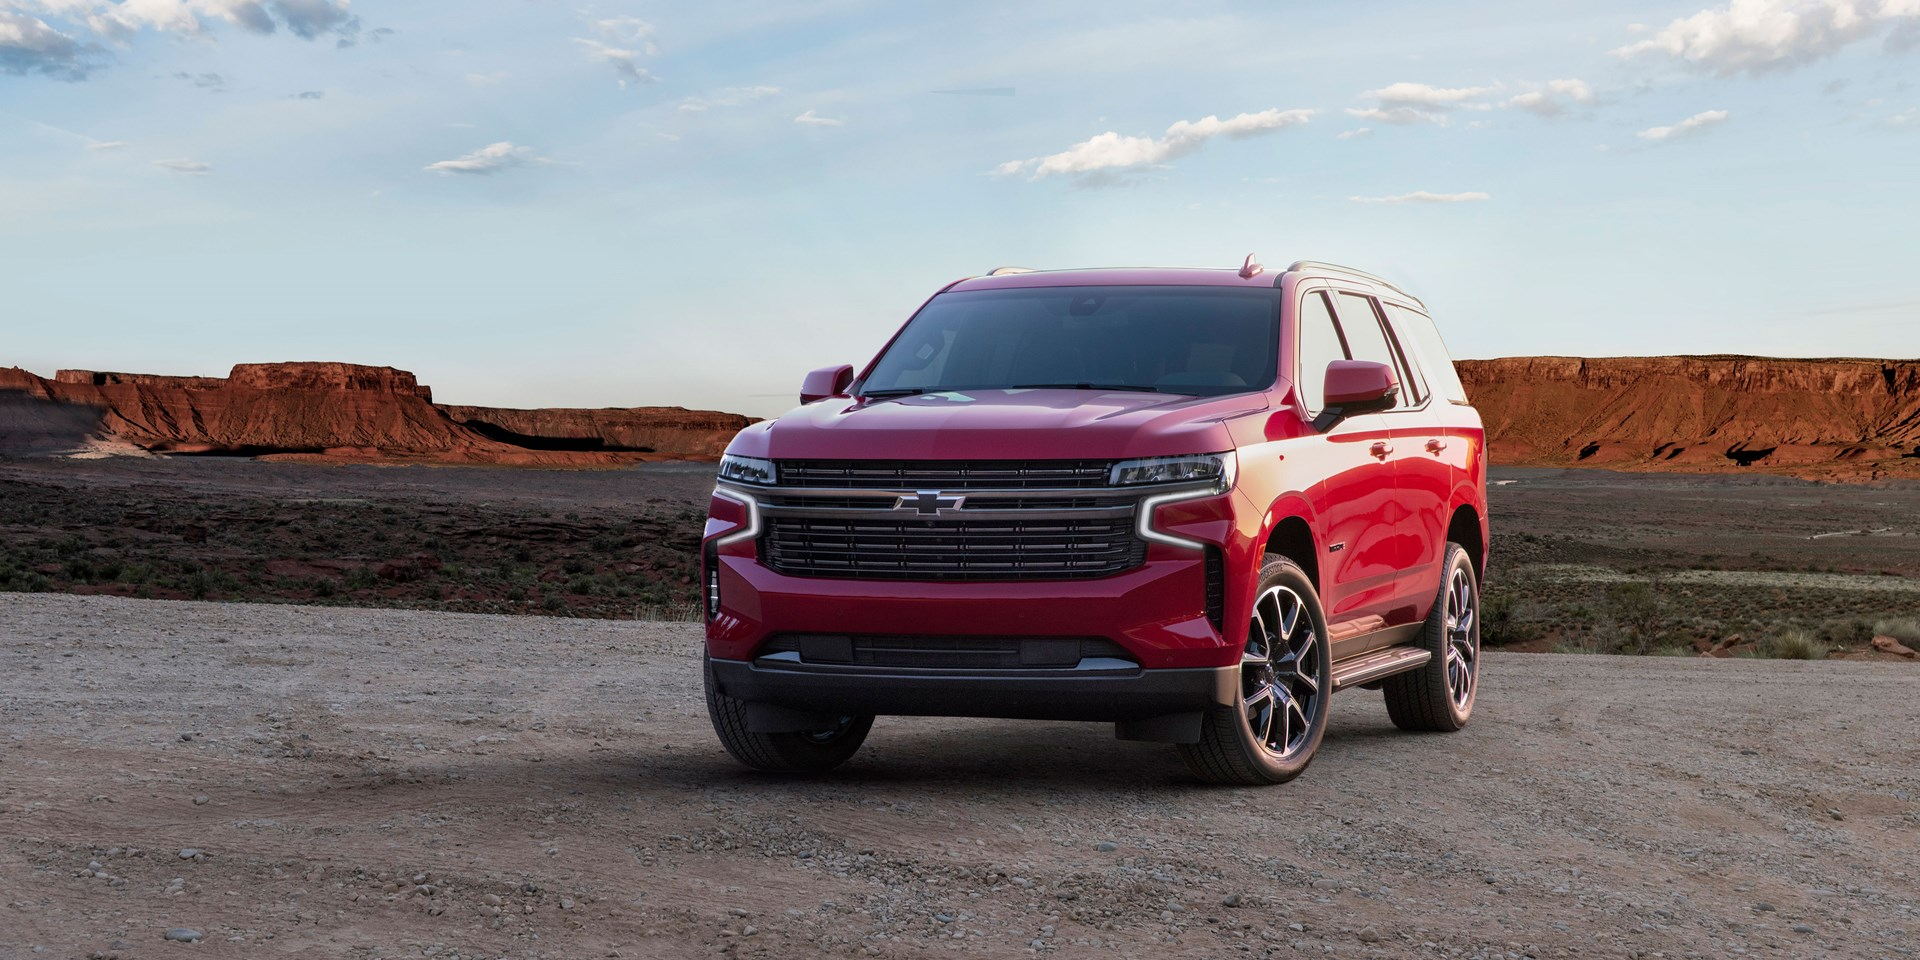 2021 - Chevrolet - Tahoe - Vehicles on Display | Chicago ...